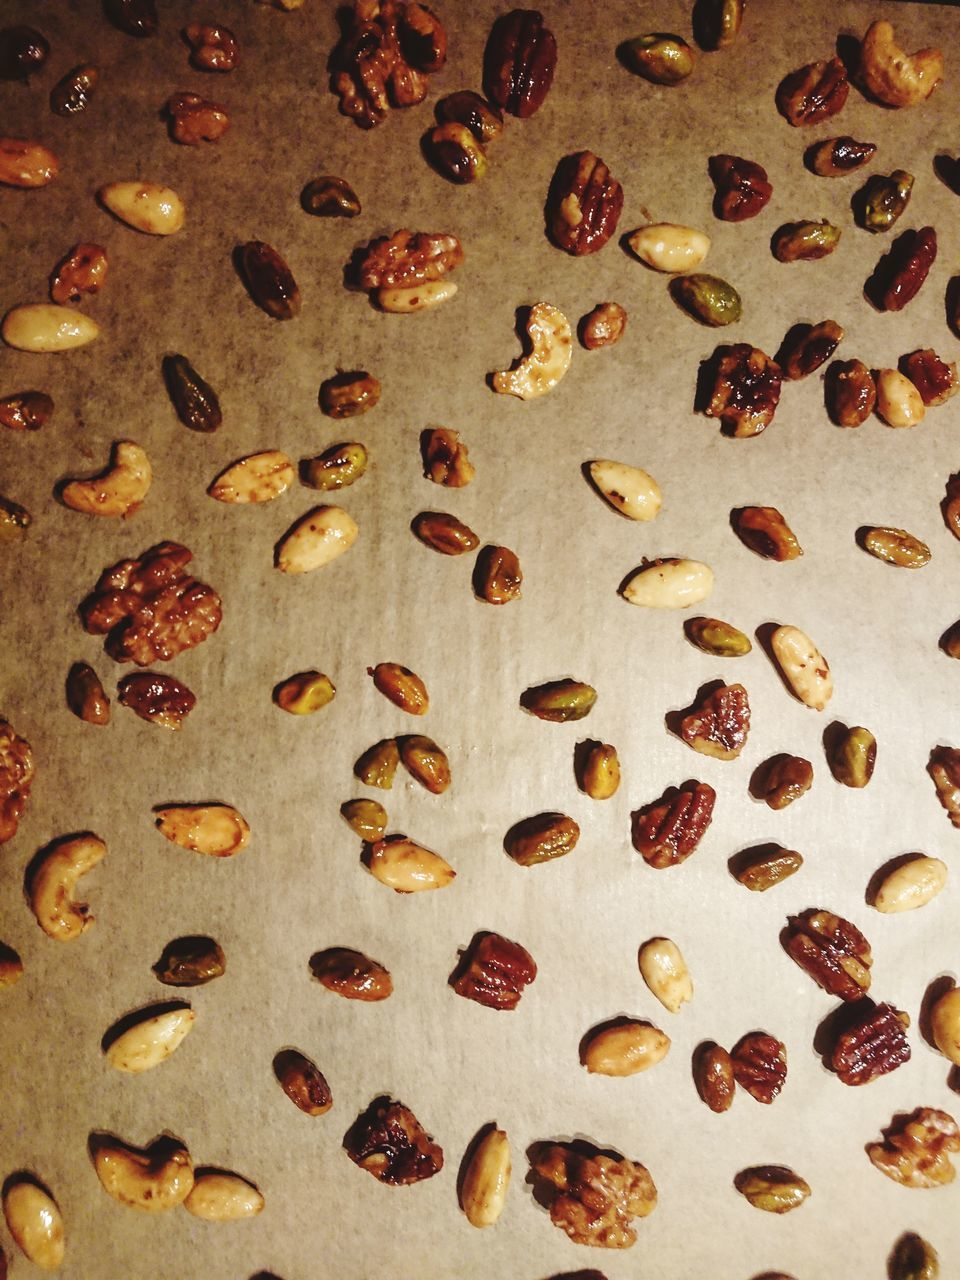 food and drink, food, raisin, large group of objects, nut - food, abundance, freshness, no people, full frame, close-up, backgrounds, dried fruit, healthy eating, indoors, sweet food, day, ready-to-eat